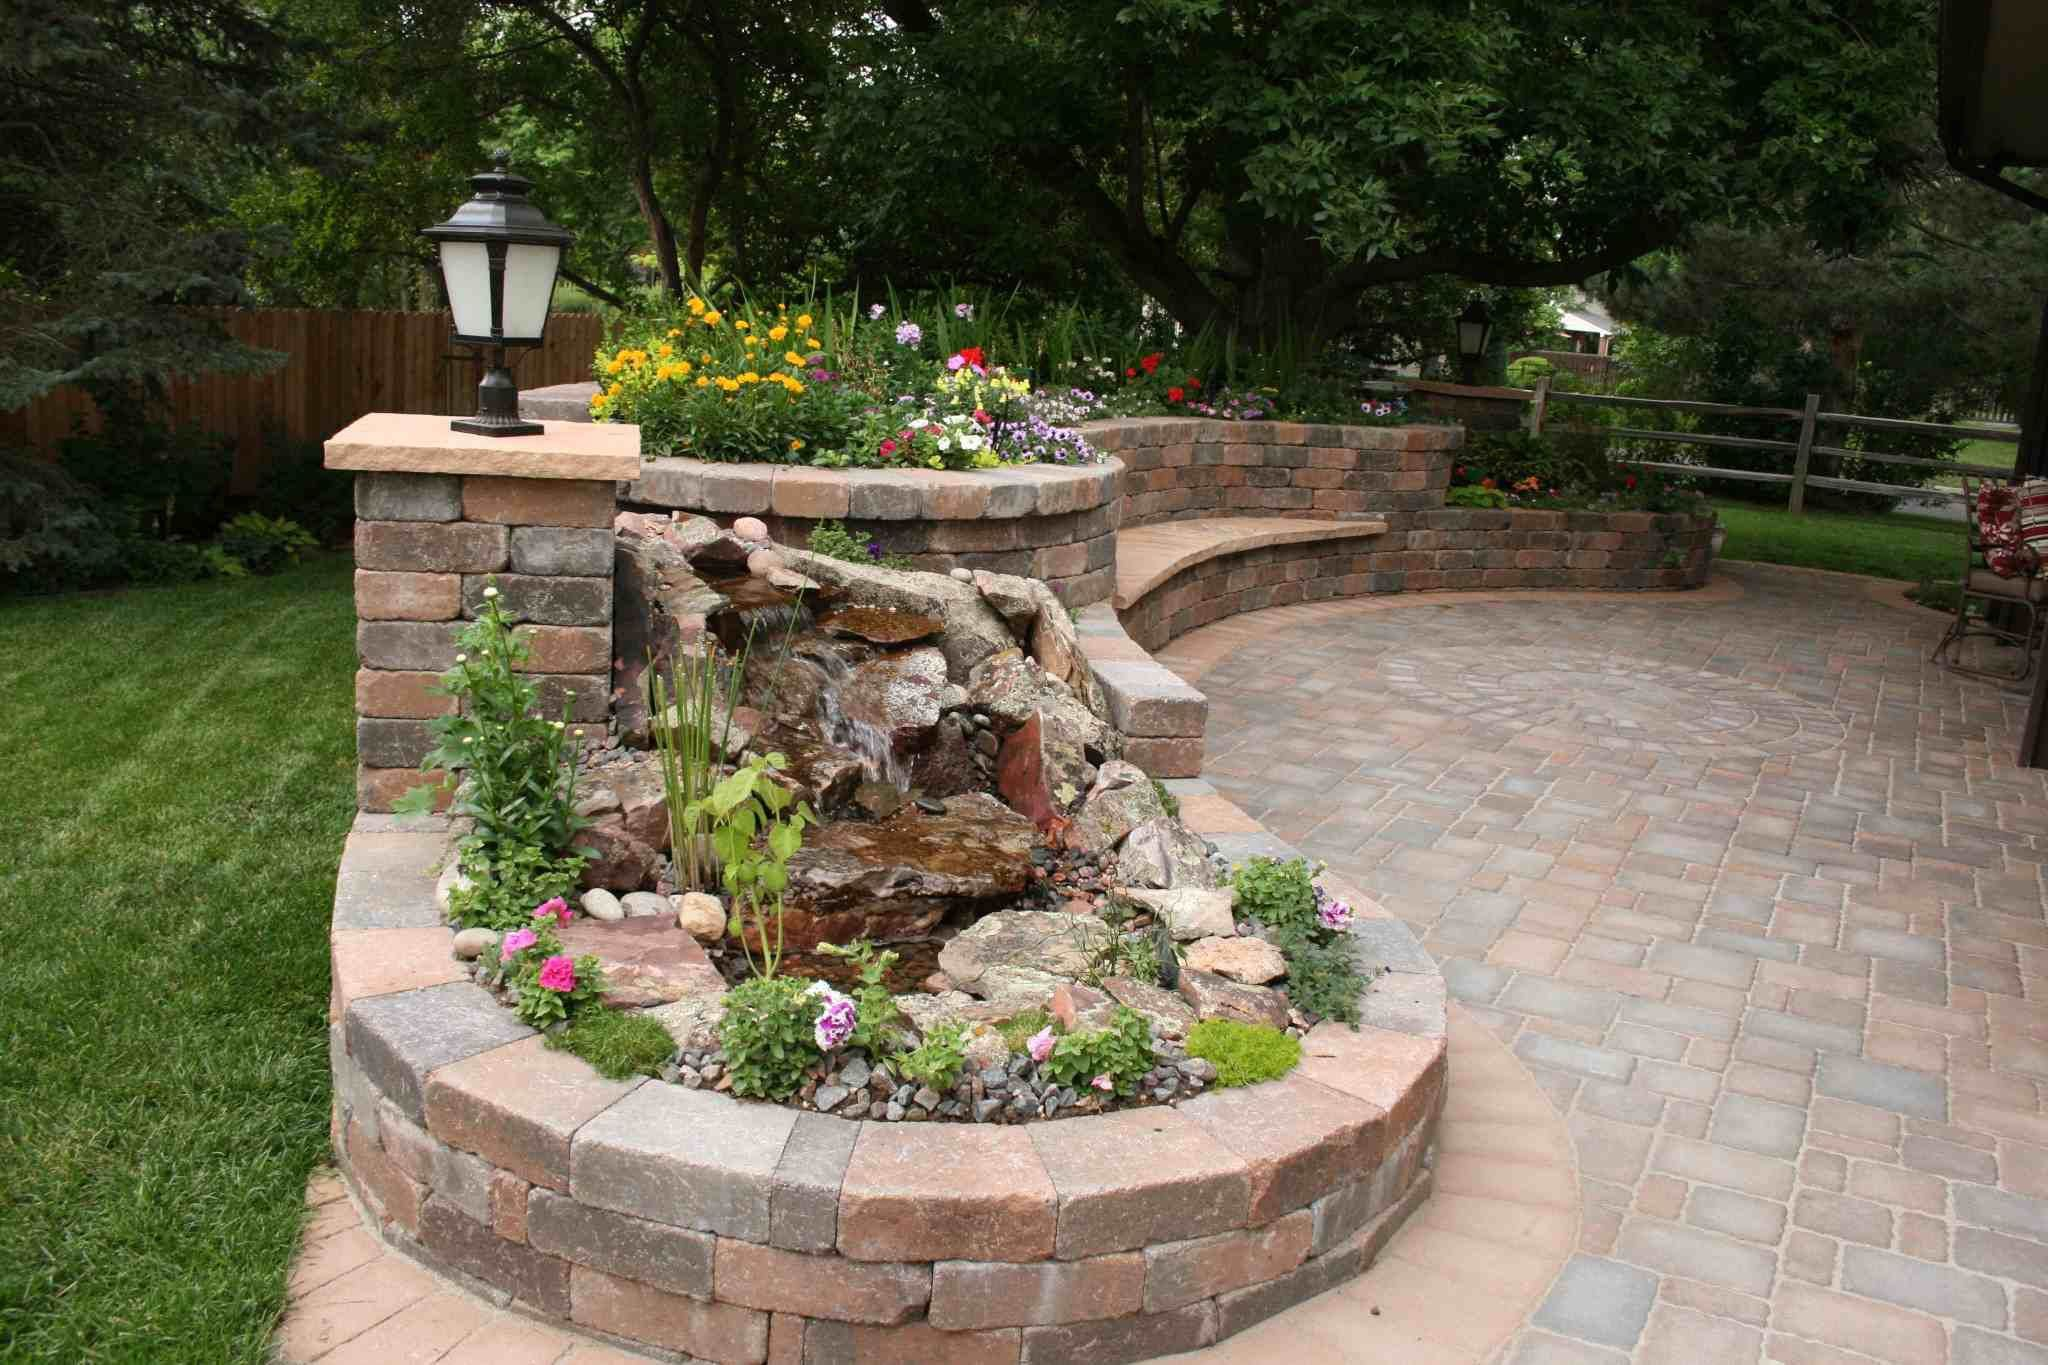 Garden fire features  Pondless contained water feature in patio